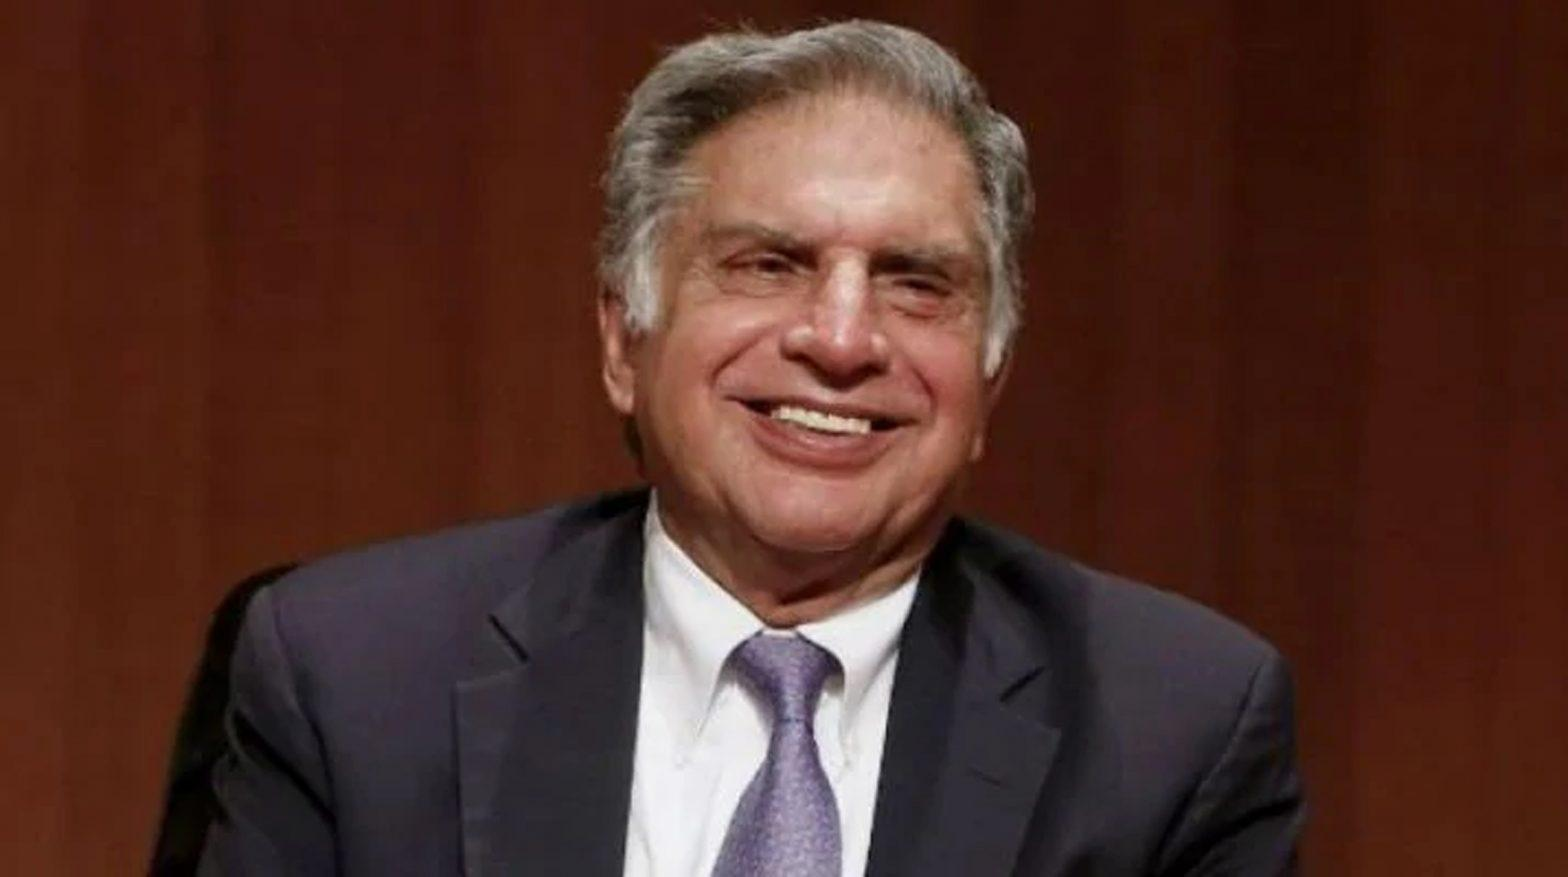 Ratan Tata to be honoured with 'Global Visionary of Sustainable Business and Peace' award_40.1